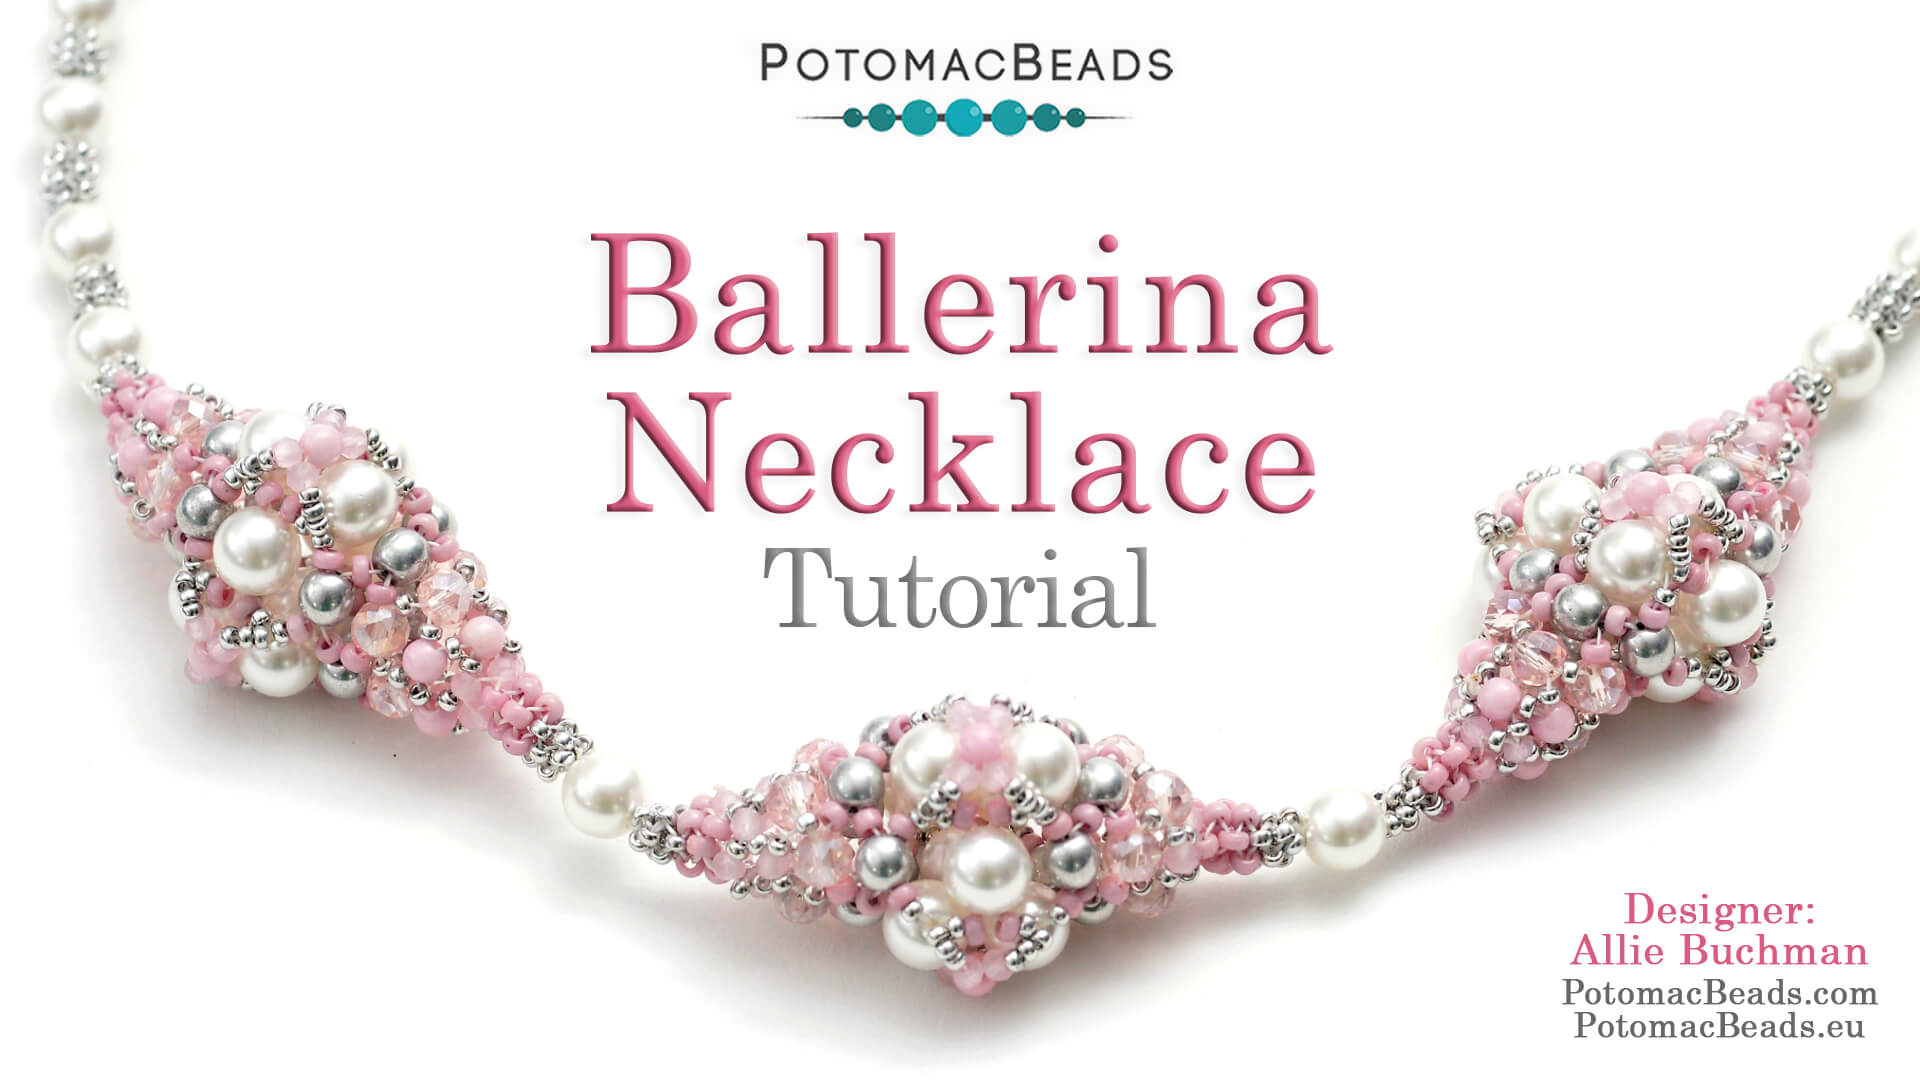 How to Bead / Videos Sorted by Beads / Pearl Videos (Czech & Freshwater) / Ballerina Necklace Tutorial